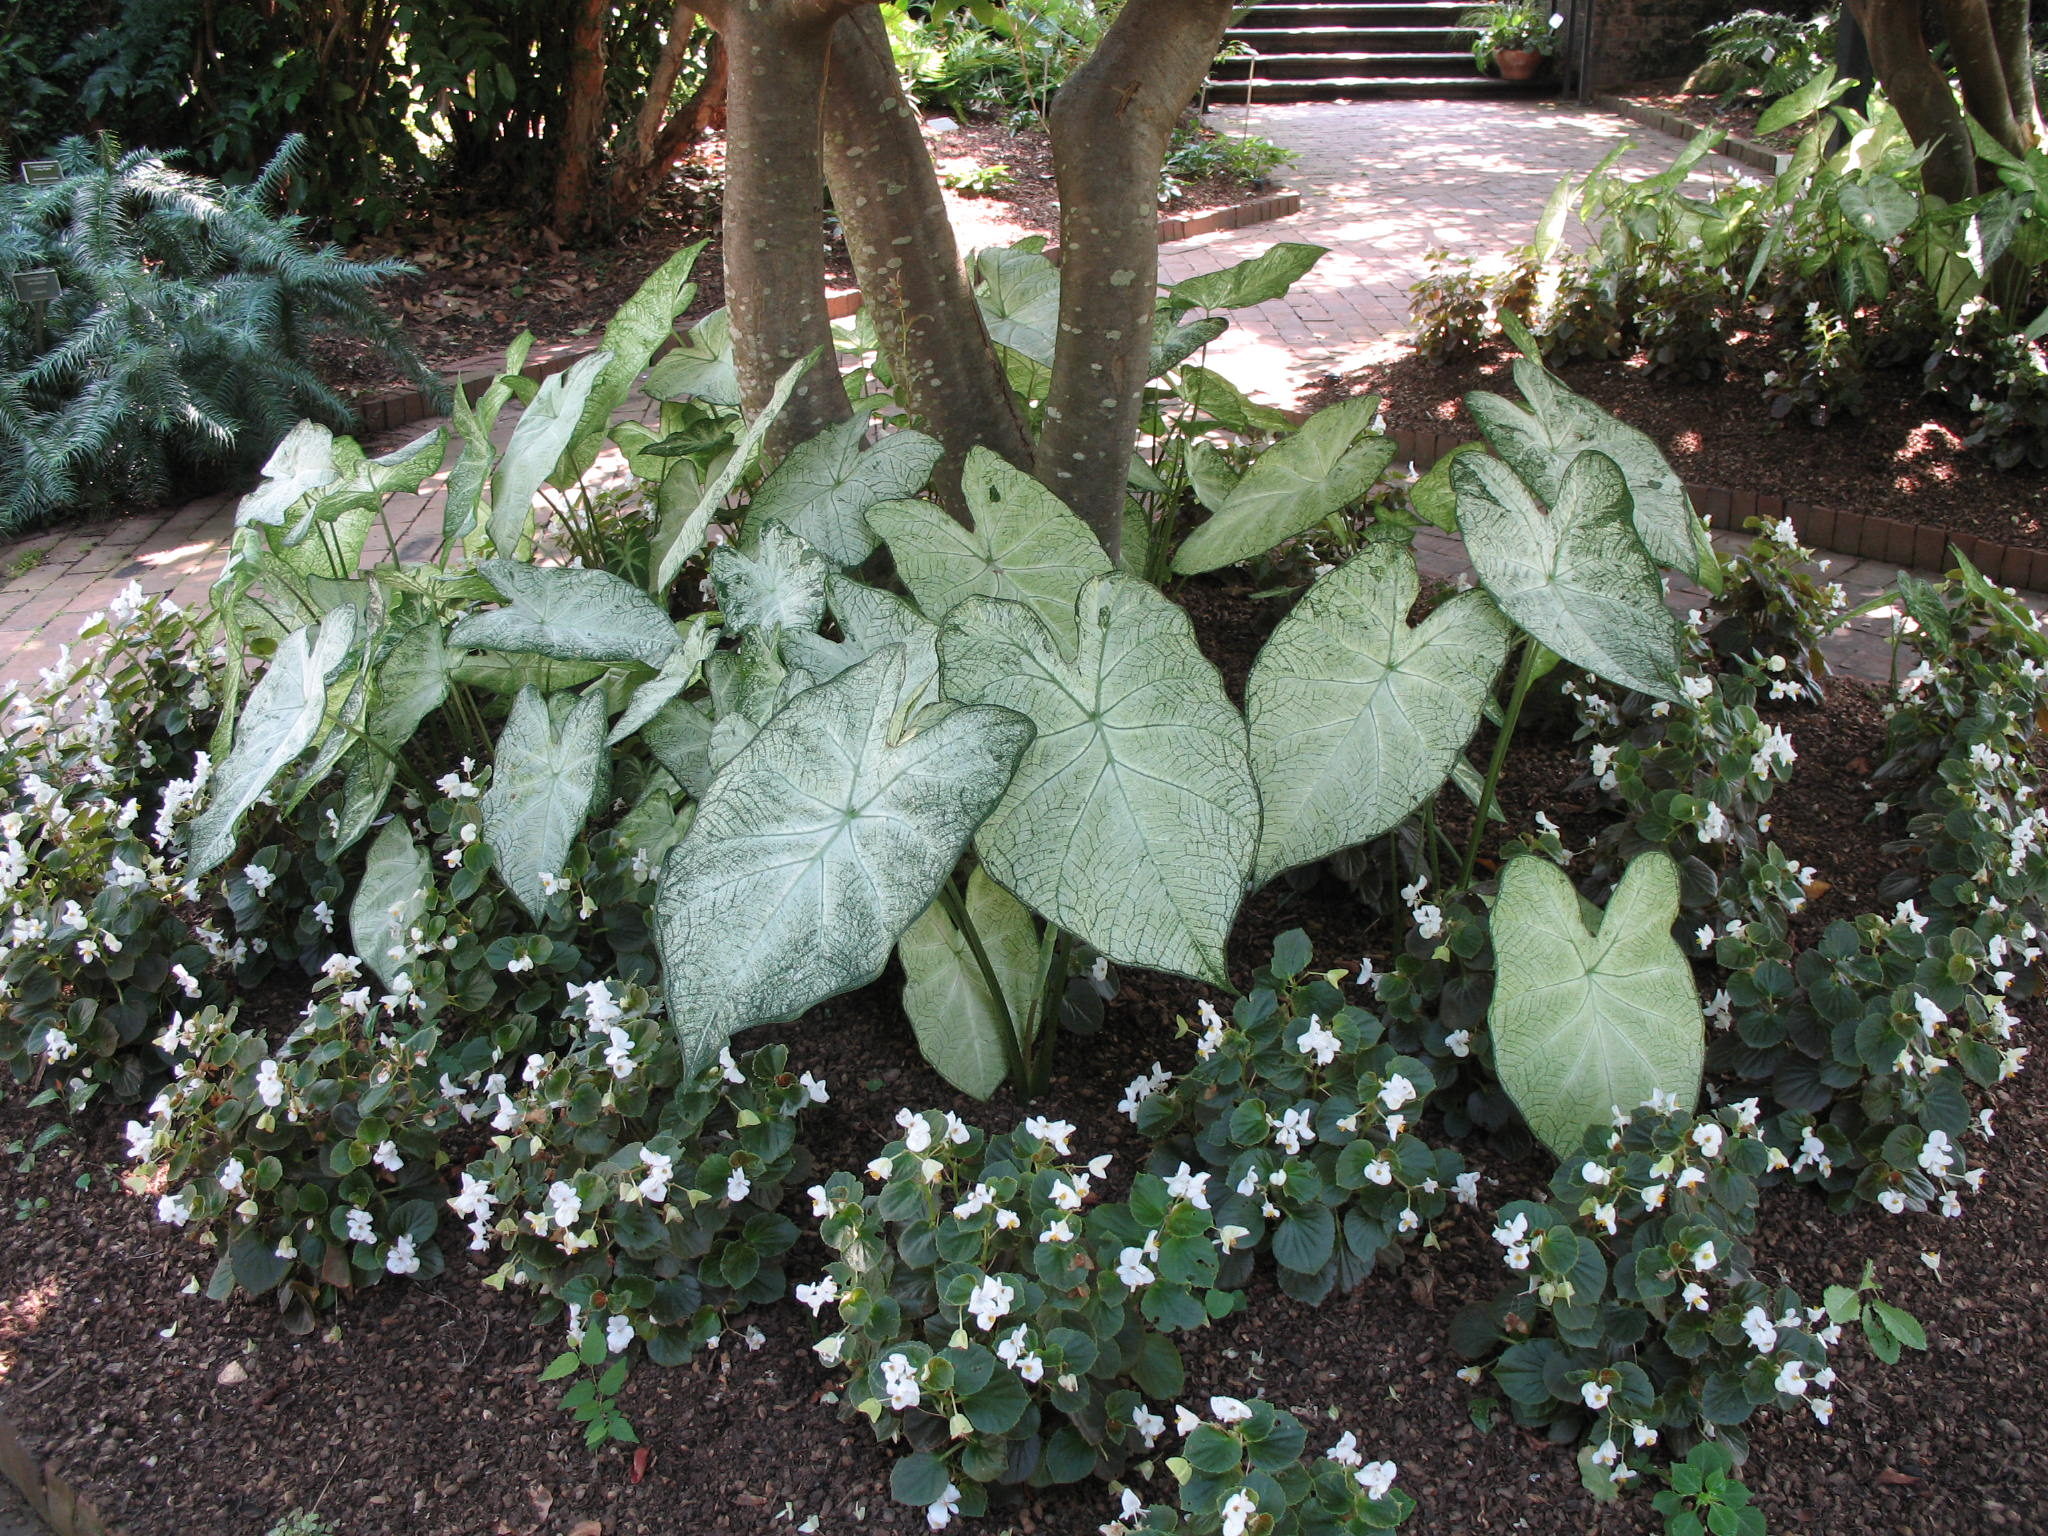 Caladium bicolor 'June Bride'   / Caladium bicolor 'June Bride'